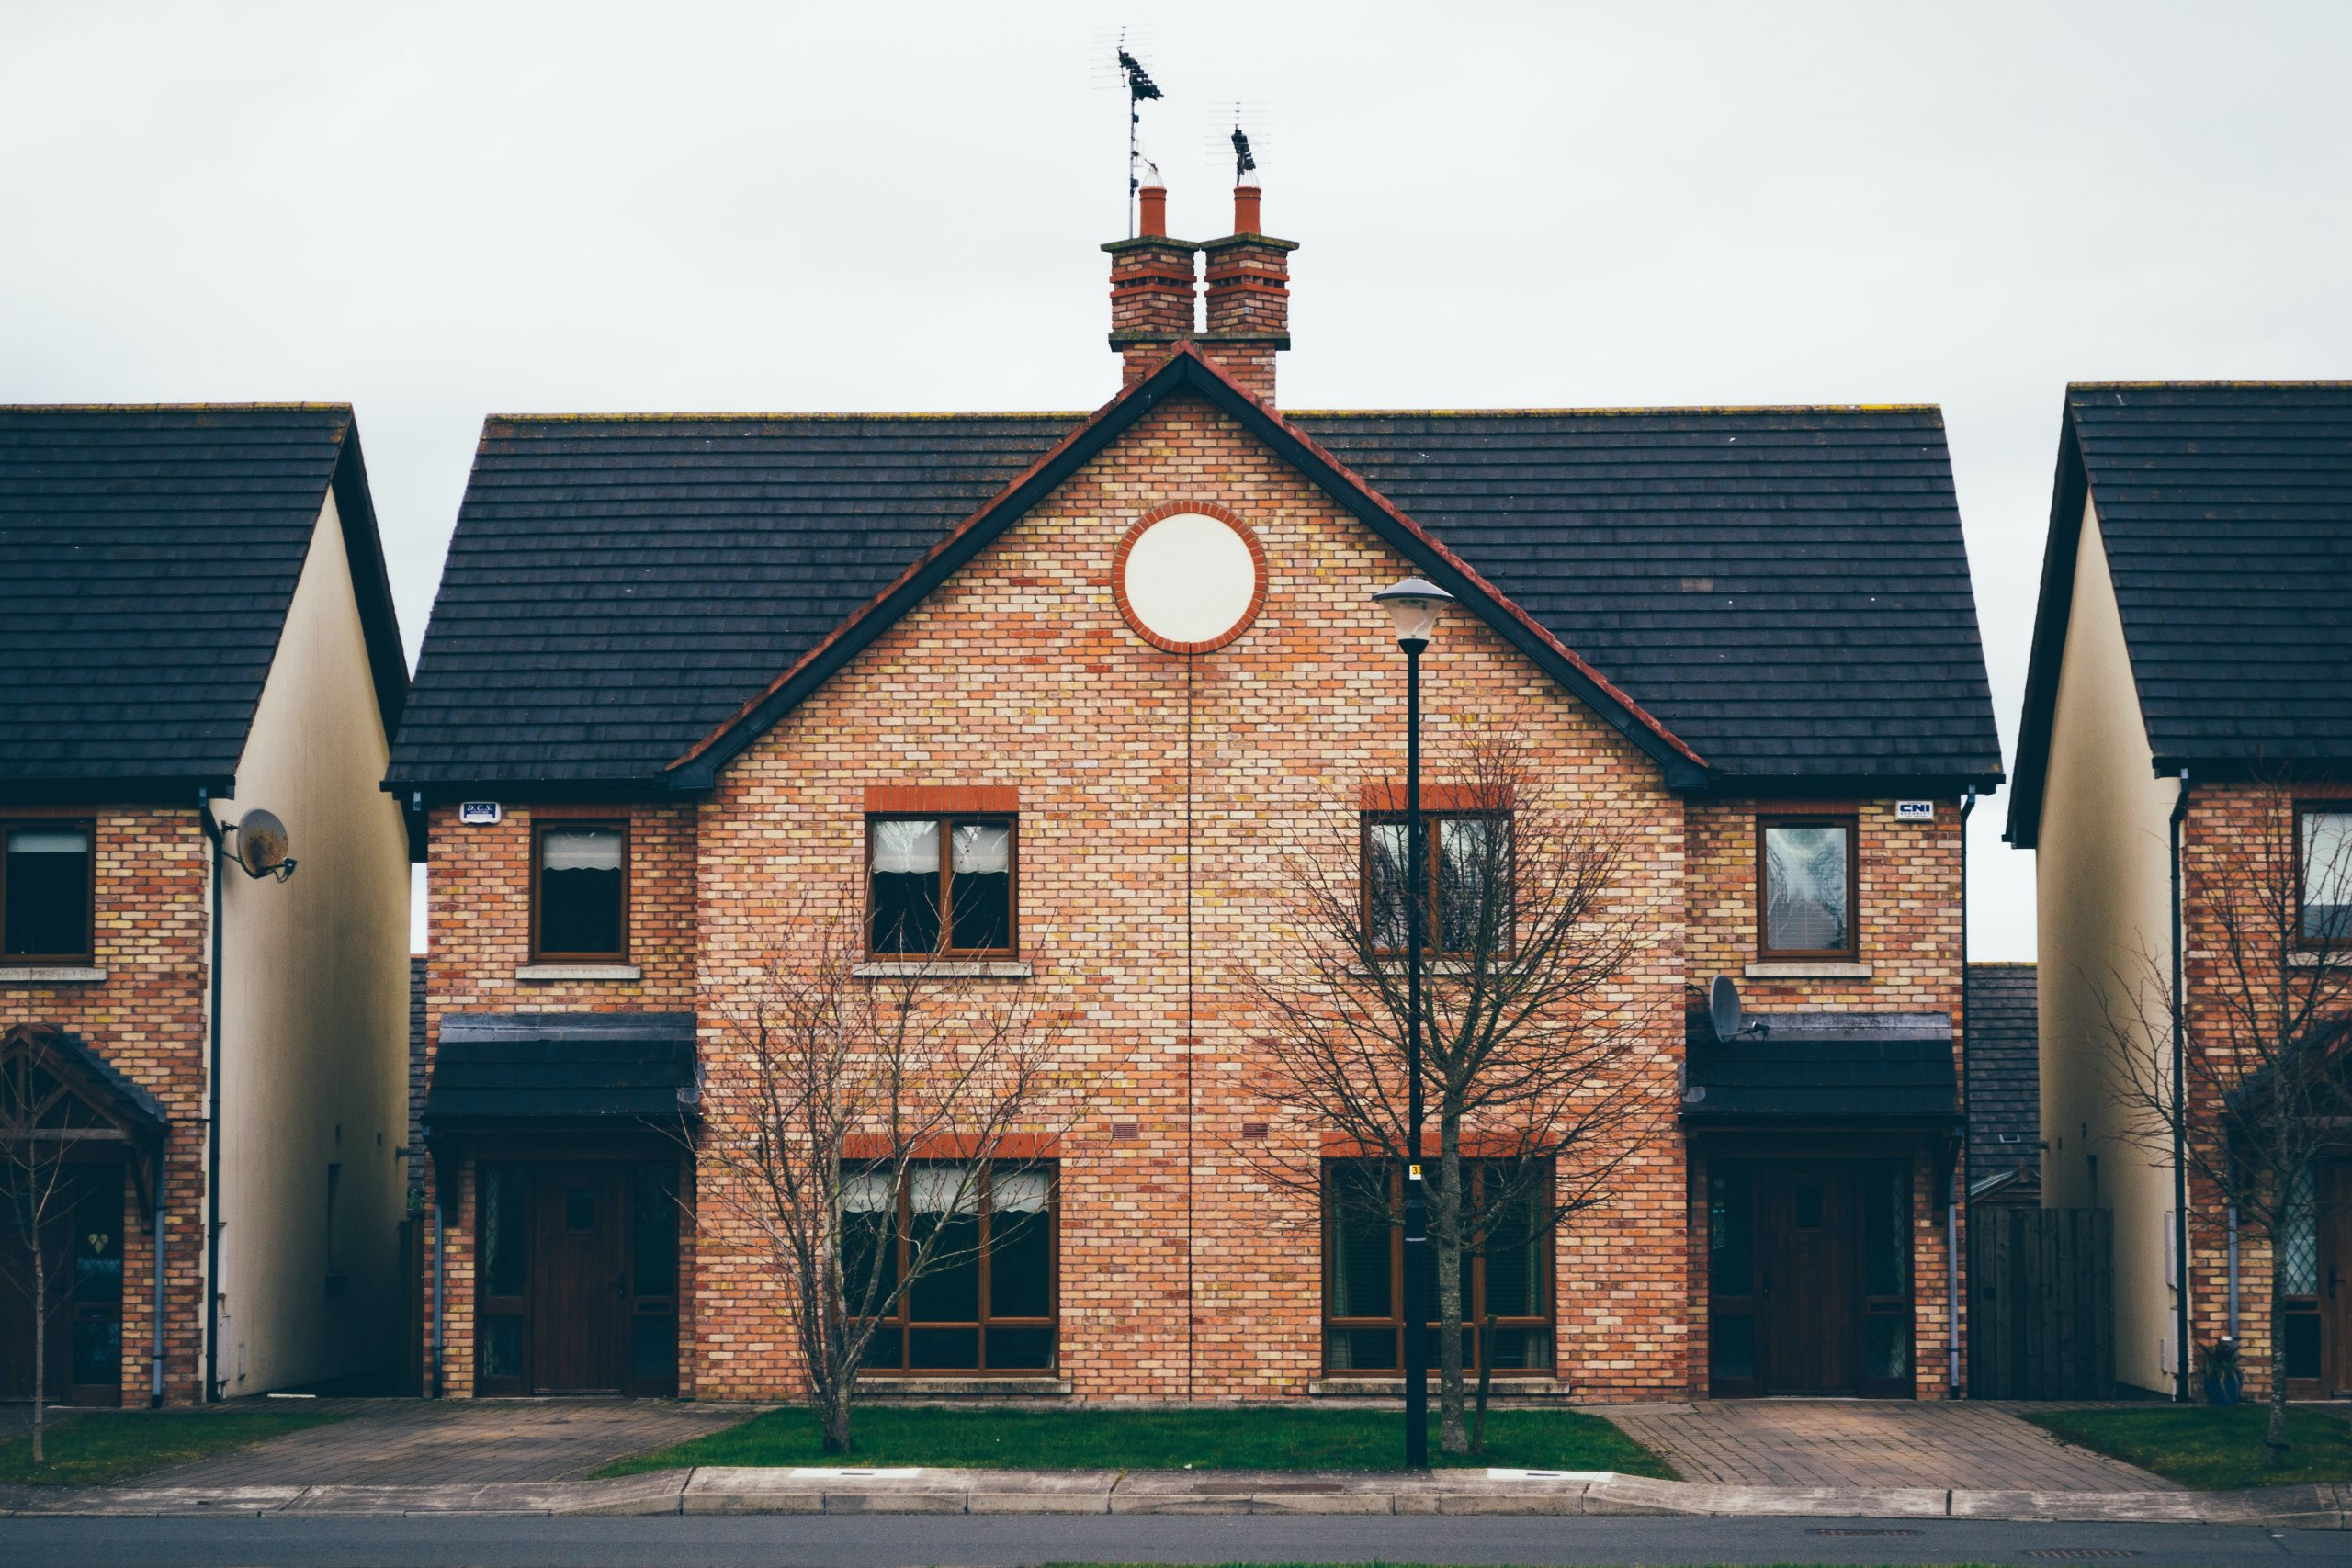 An image of a red brick modern semi detached home